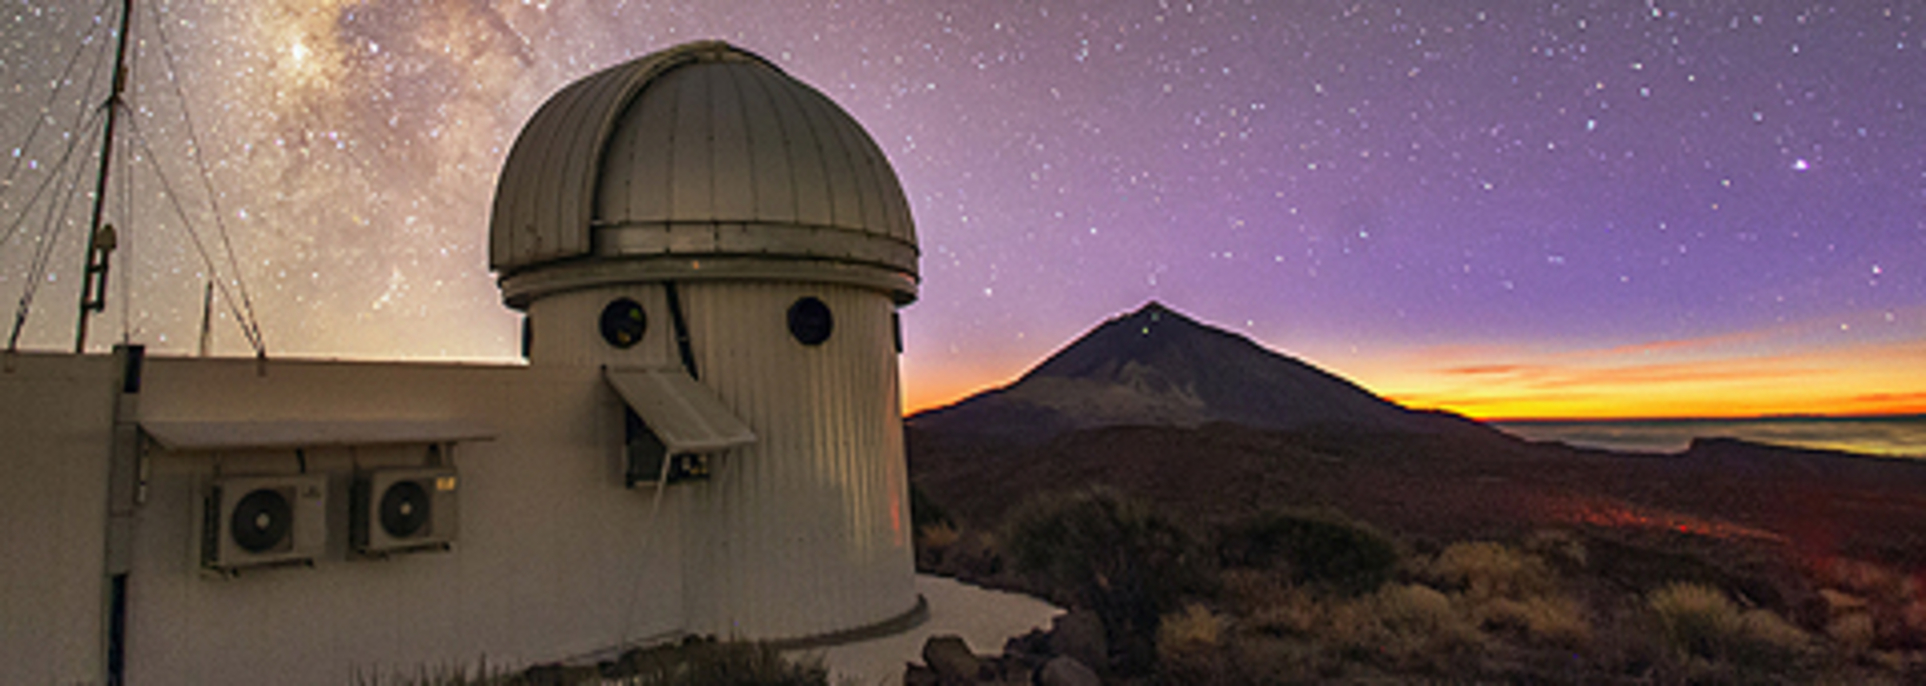 Stellar Observations Network Group | Instituto de Astrofísica de Canarias • IAC